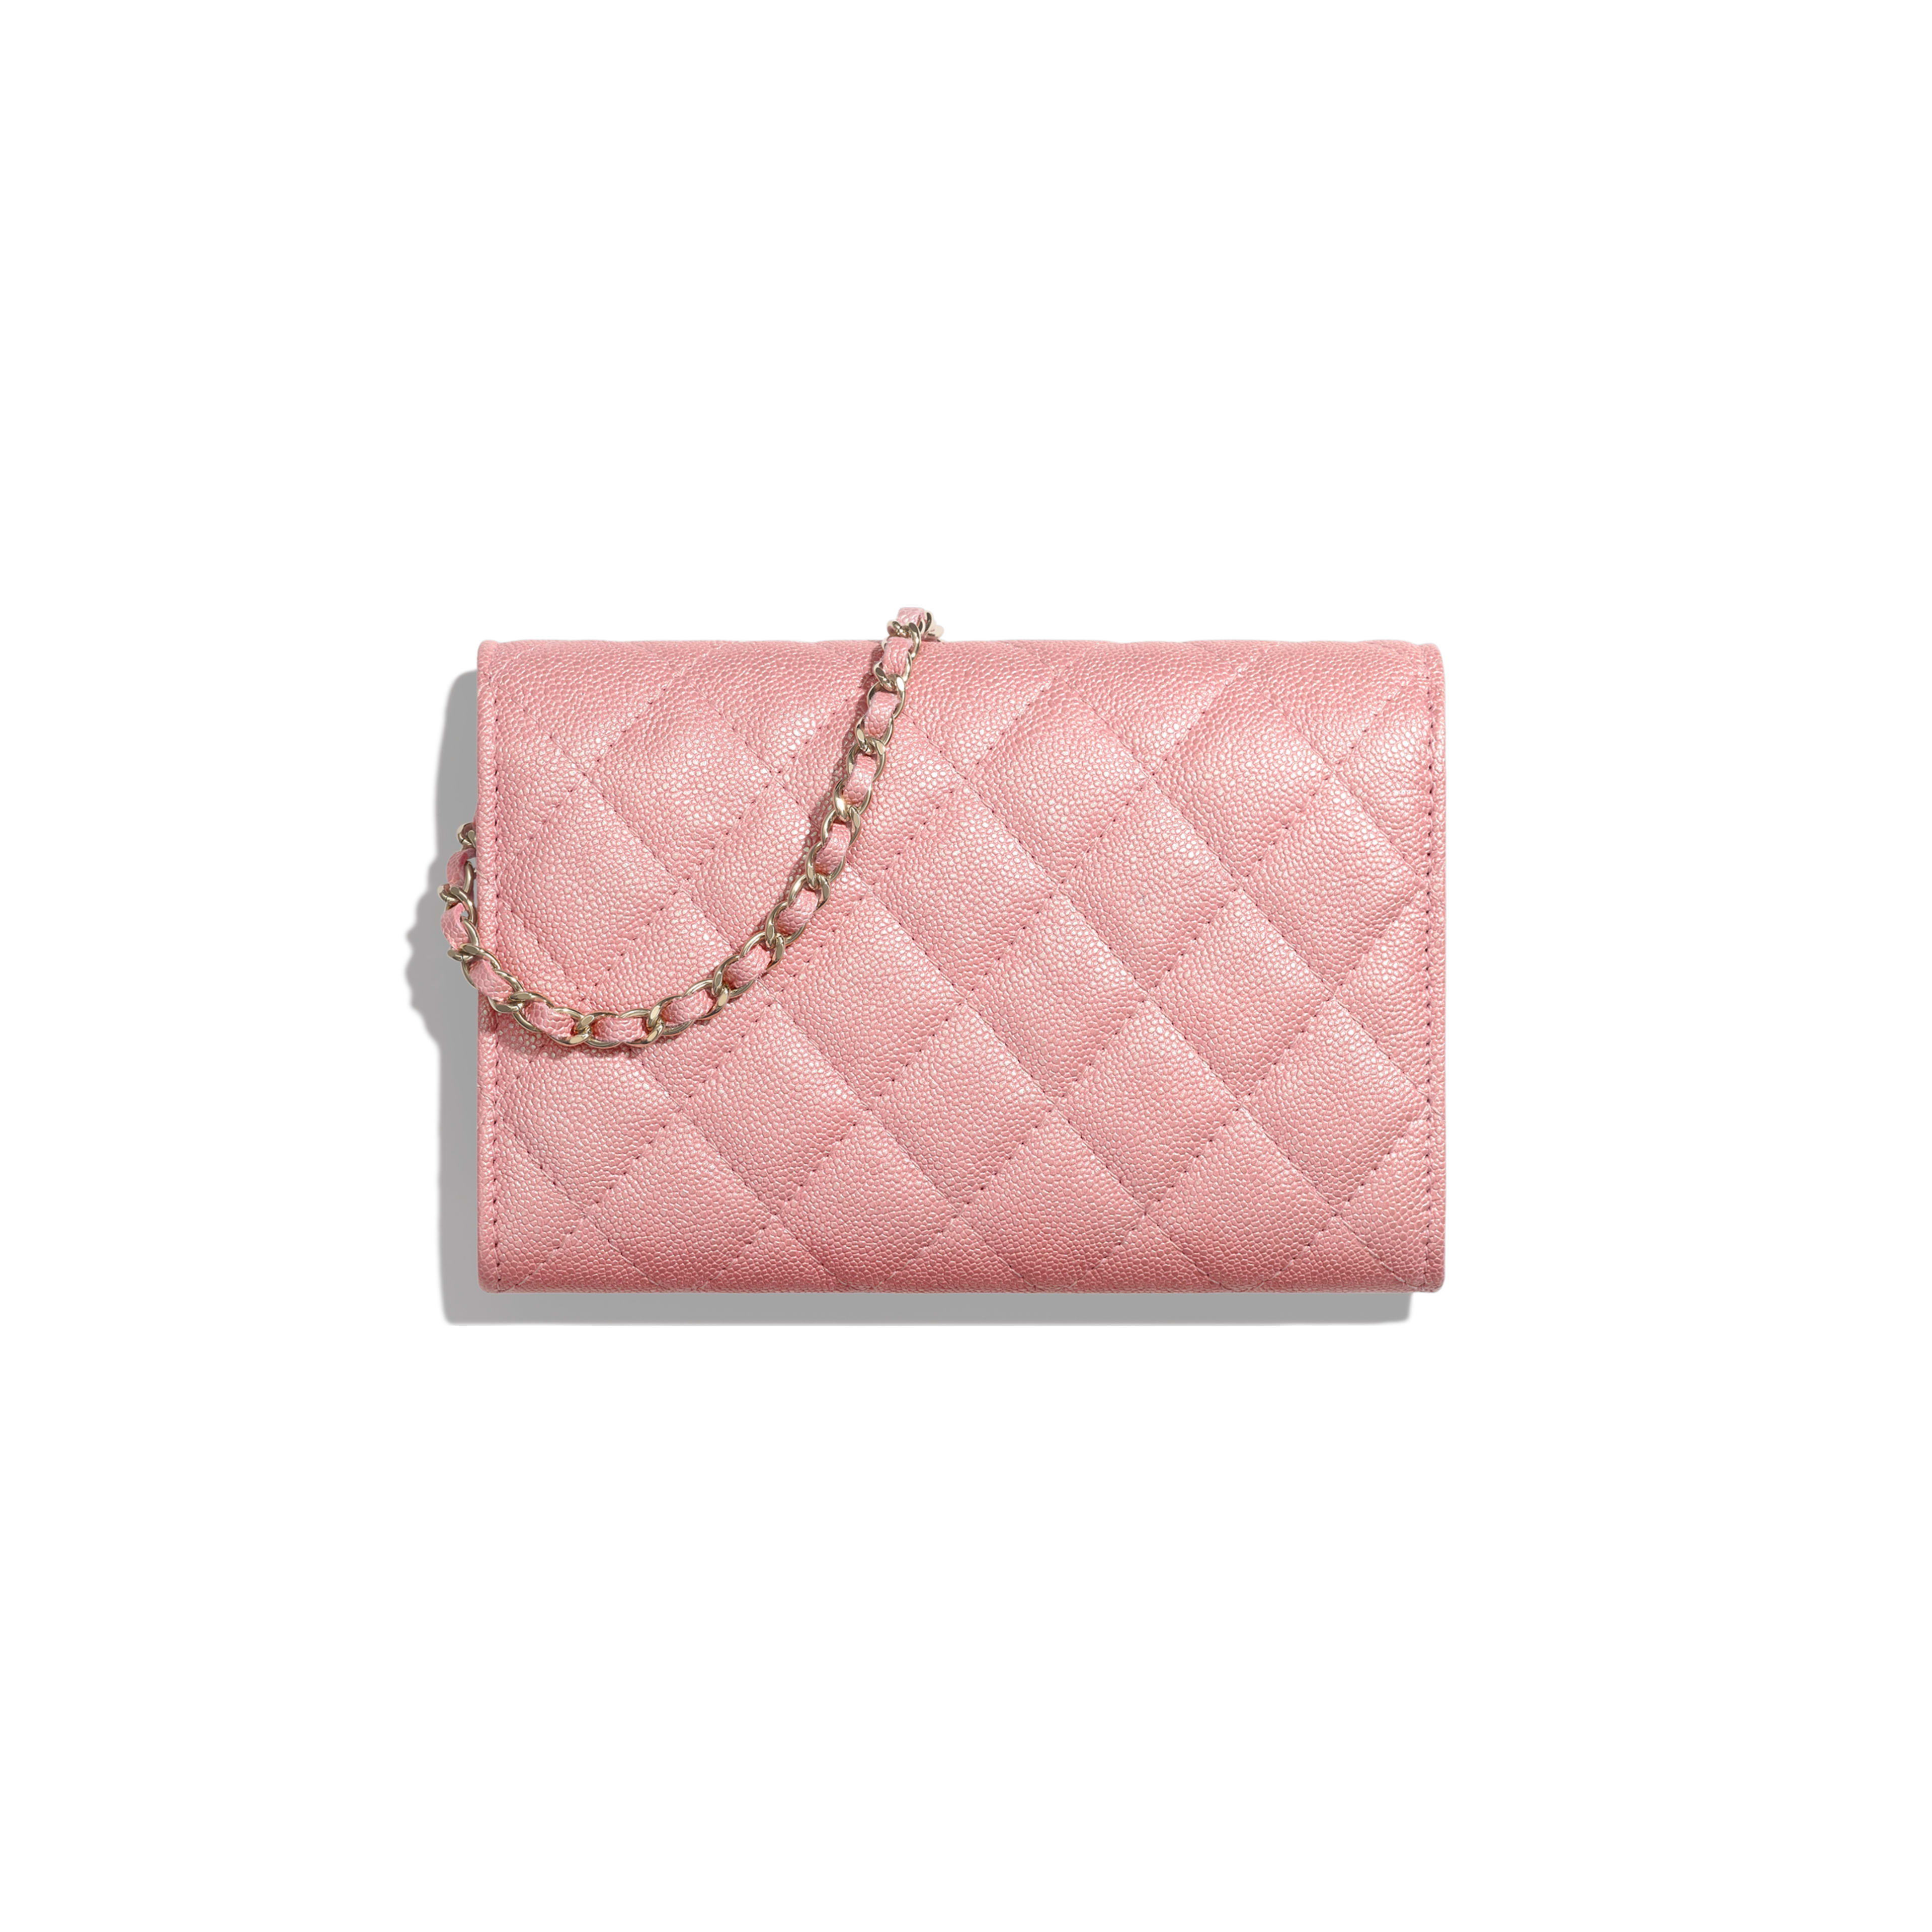 Classic Clutch with Chain - Pink - Iridescent Grained Calfskin & Gold-Tone Metal - Alternative view - see full sized version